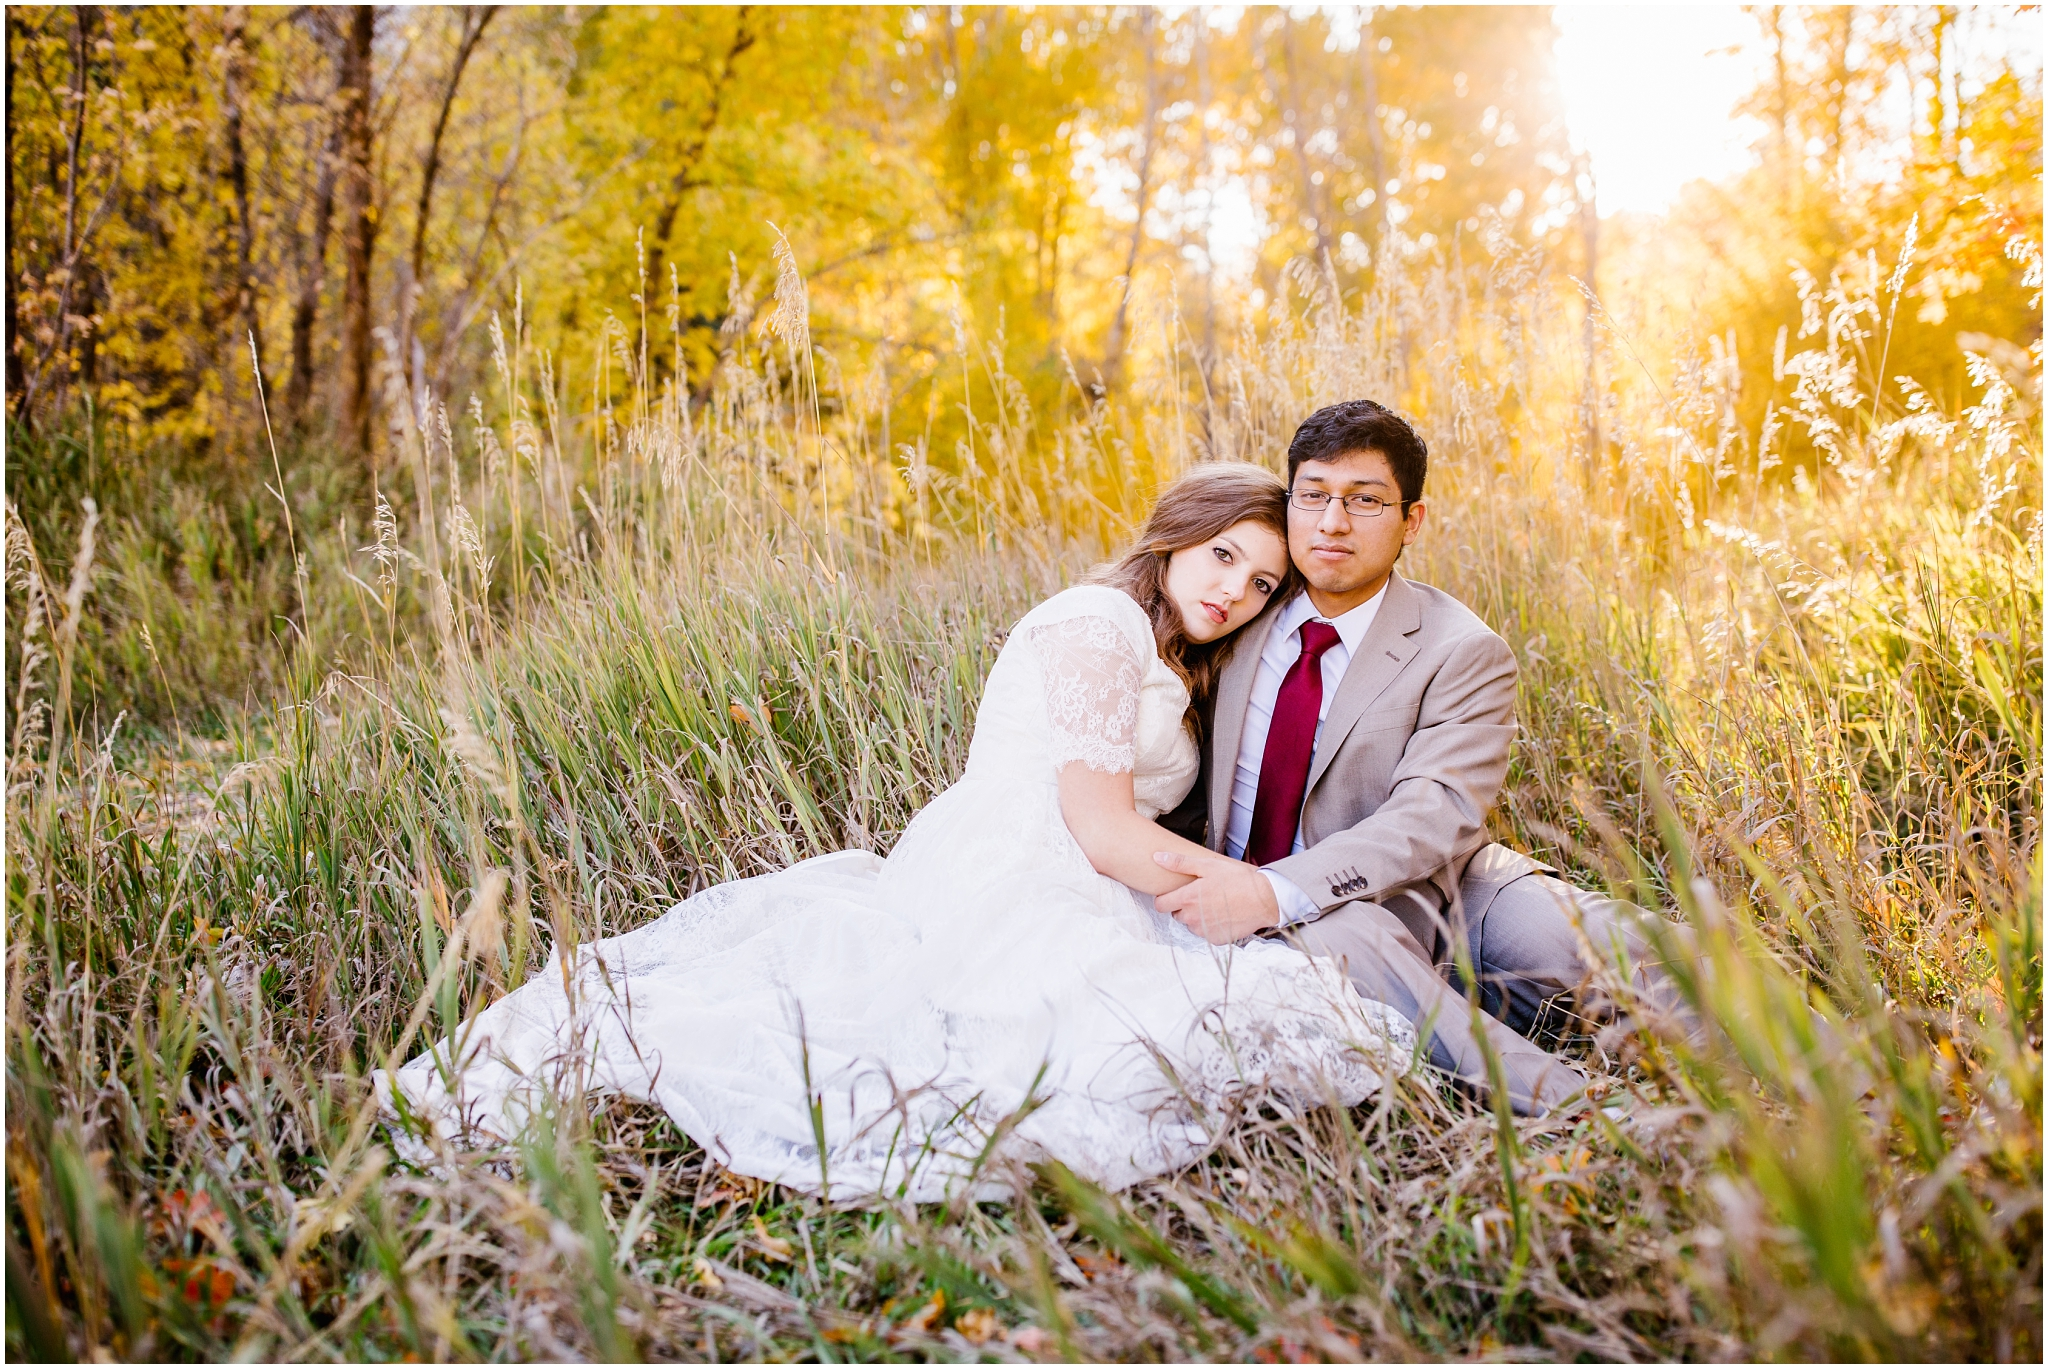 HE-BRIDALS-9_Lizzie-B-Imagery-Utah-Wedding-Photographer-Central-Utah-Park-City-Salt-Lake-City-Hobble-Creek-Canyon-Springville.jpg